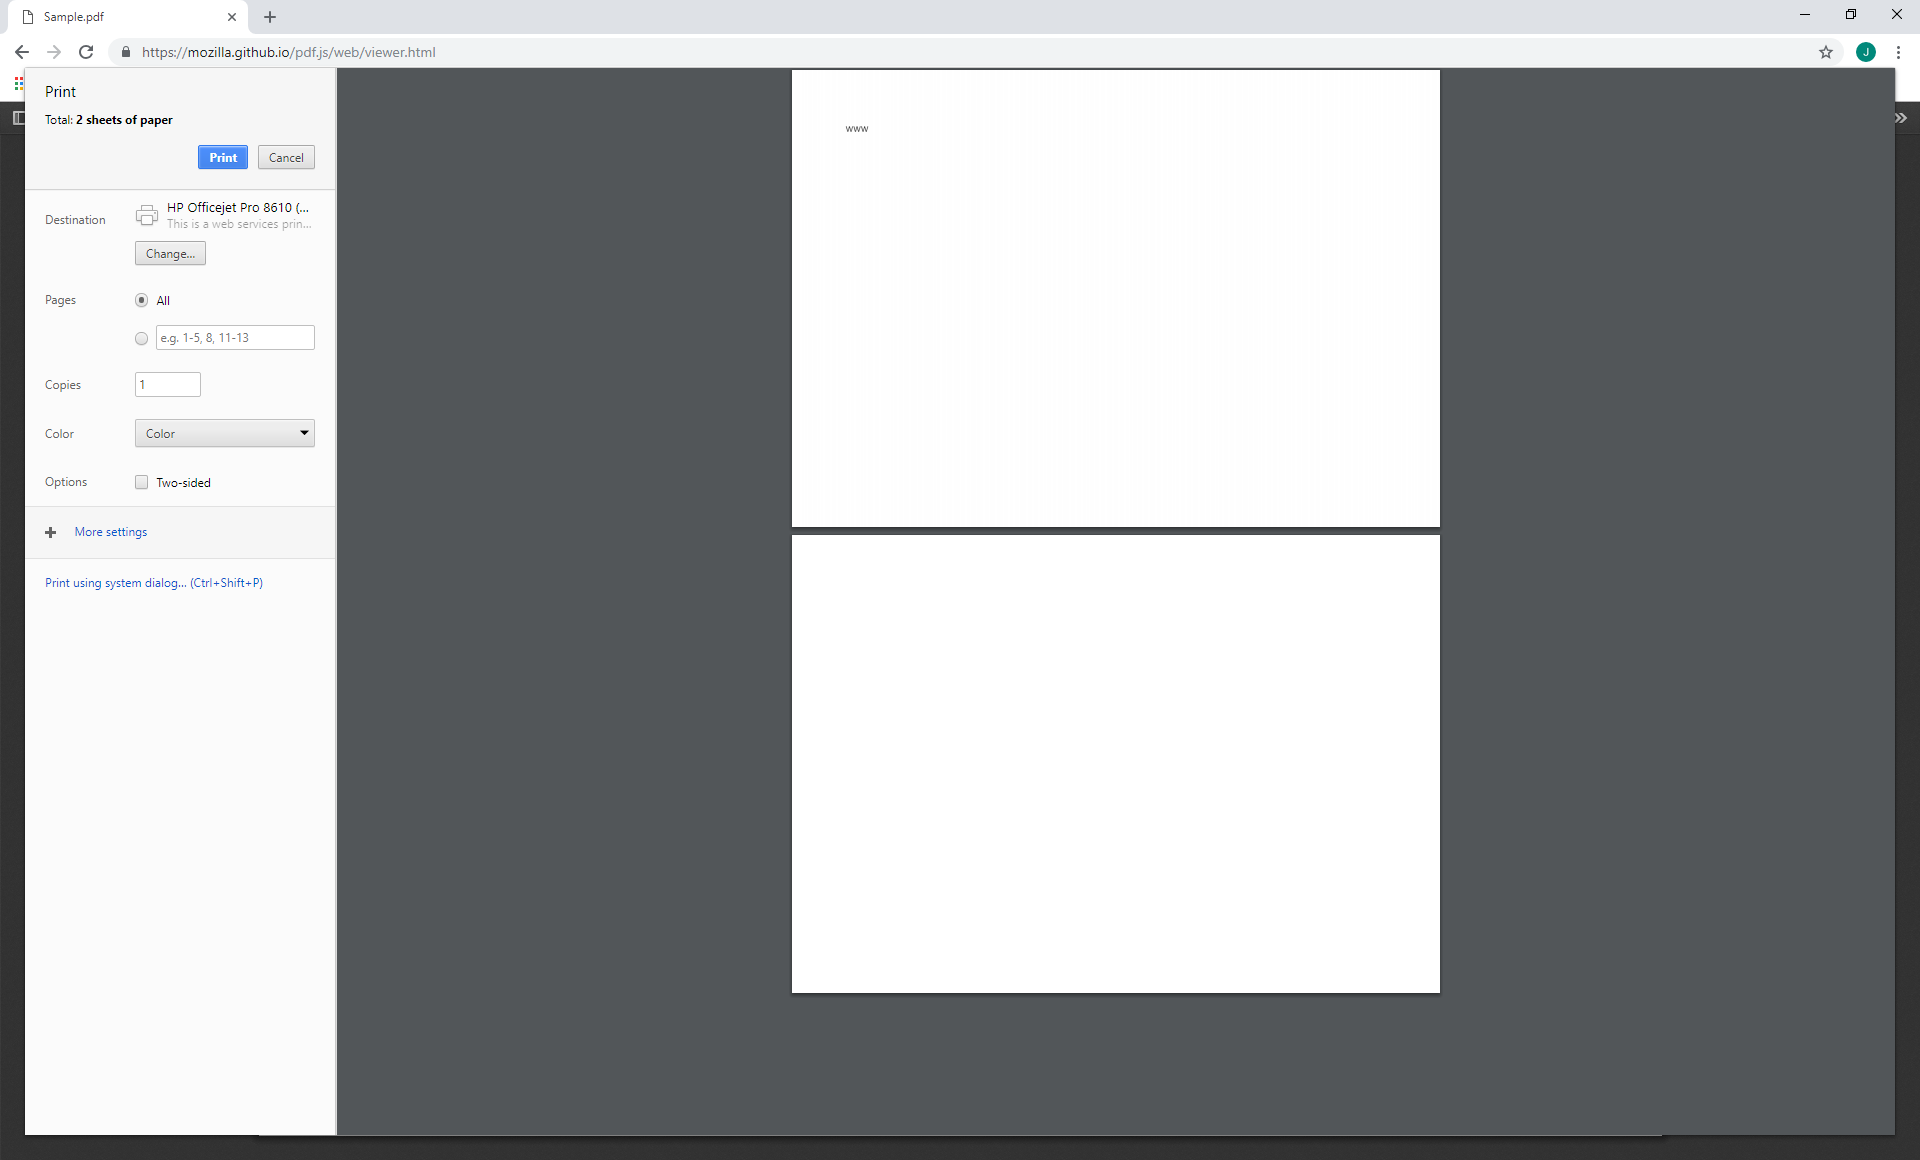 Empty page added in when printing from Viewer in Chrome